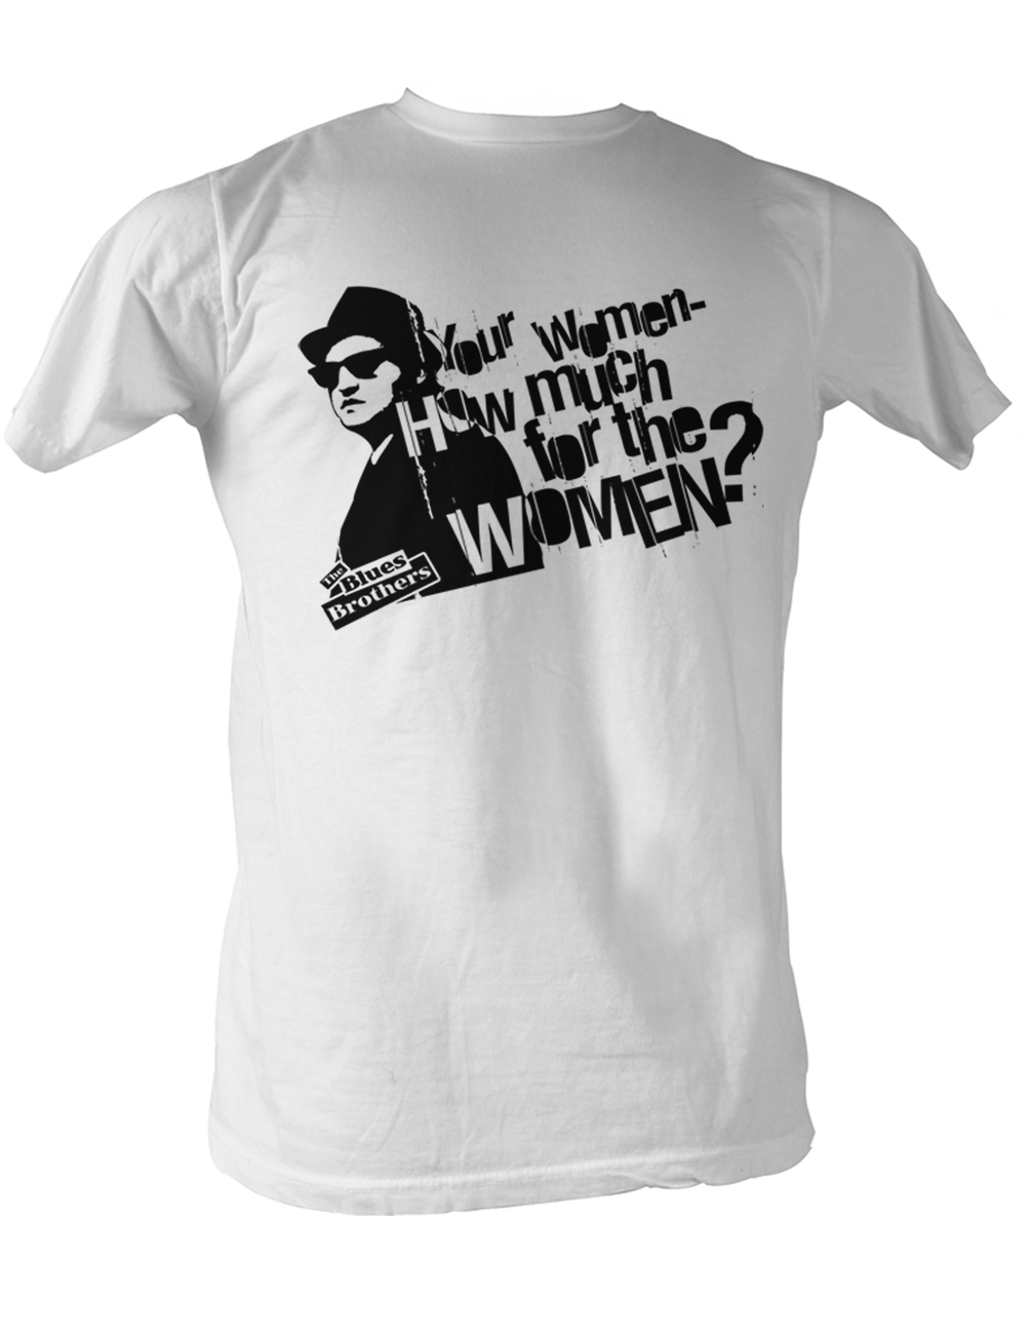 The blues brothers t shirt how much for the women white for How much is a shirt